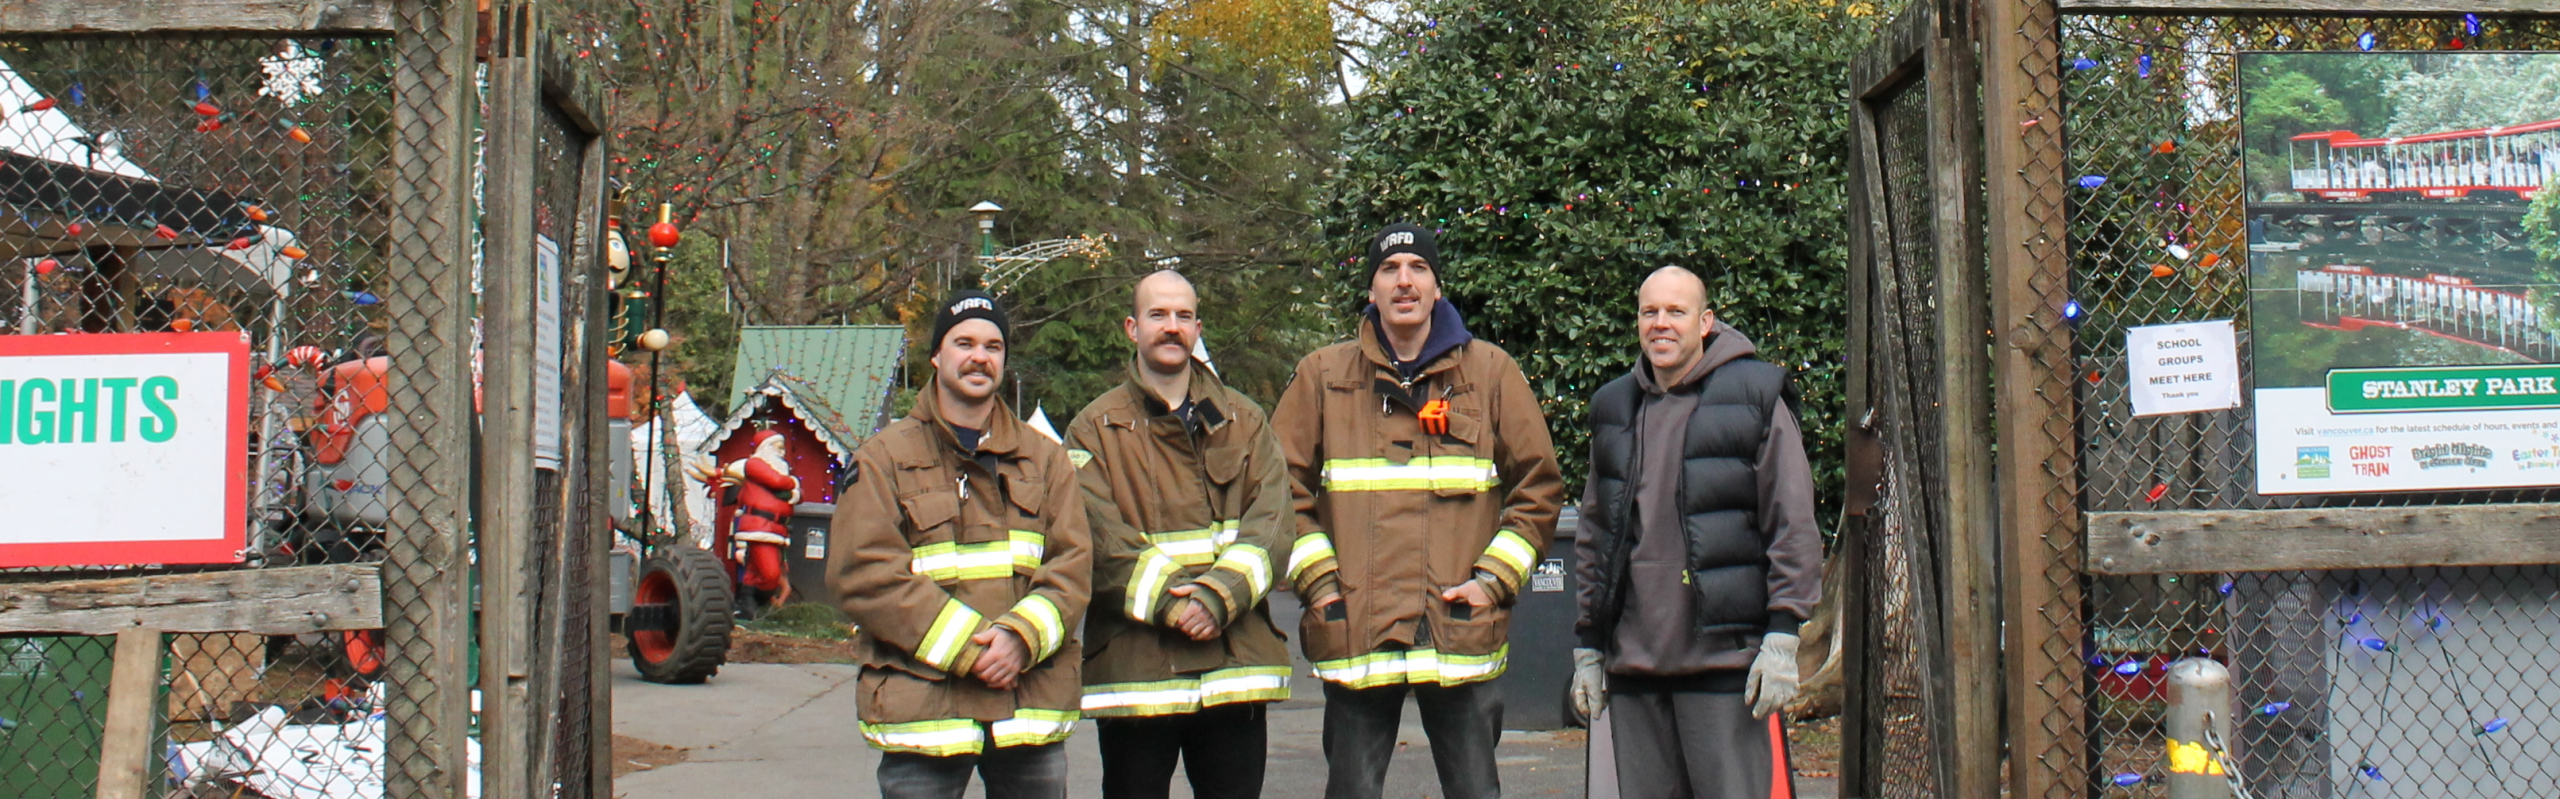 WHITE ROCK FIREFIGHTERS ASSOCIATION